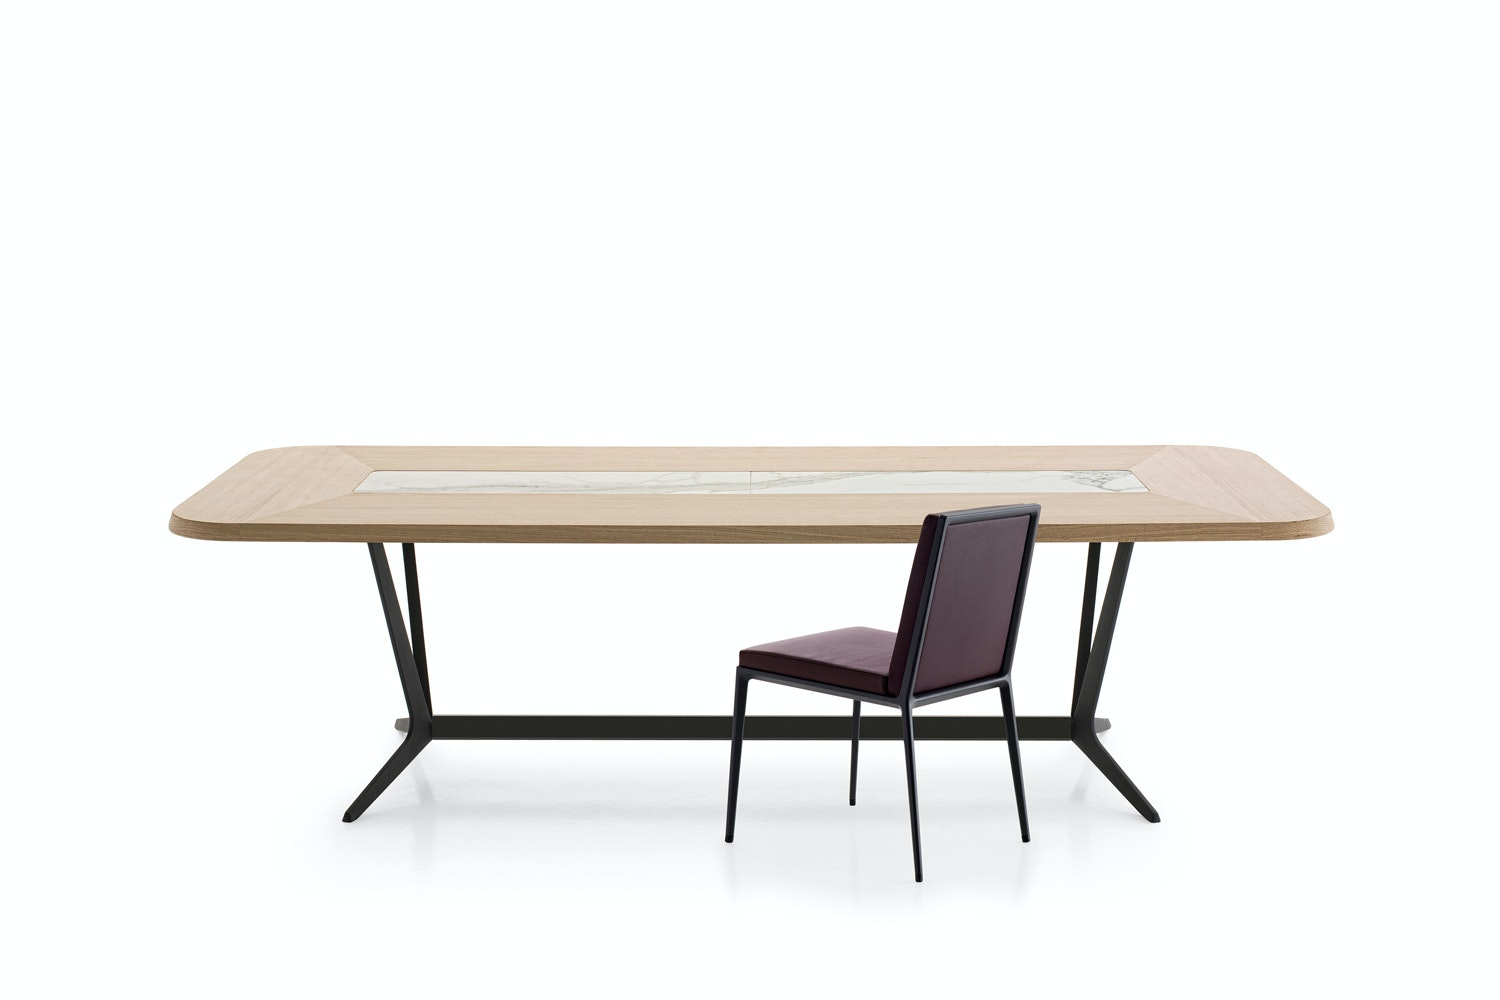 Astrum Table by Antonio Citterio for Maxalto